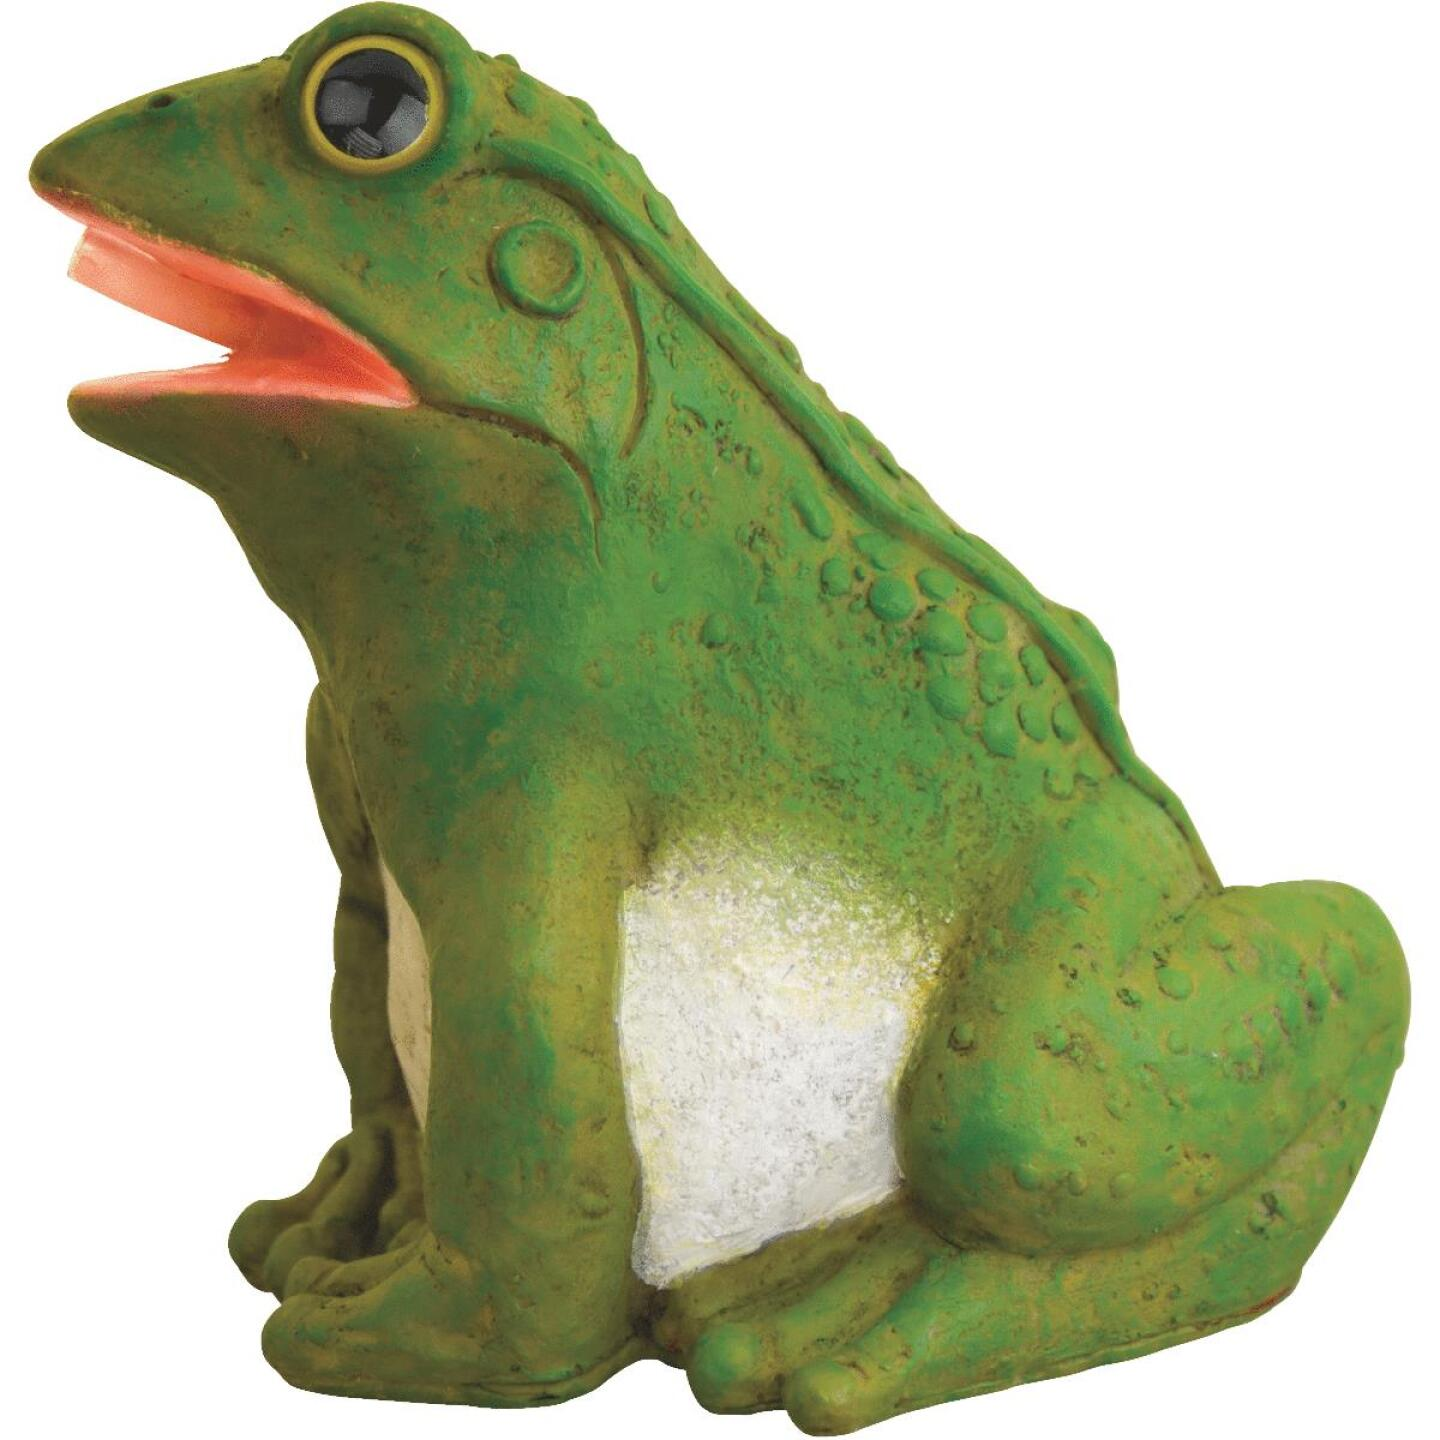 PondMaster 5.1 In. W. x 6.5 In. H. x 8.6 In. L. Resin Fountain Frog Spitter Image 1